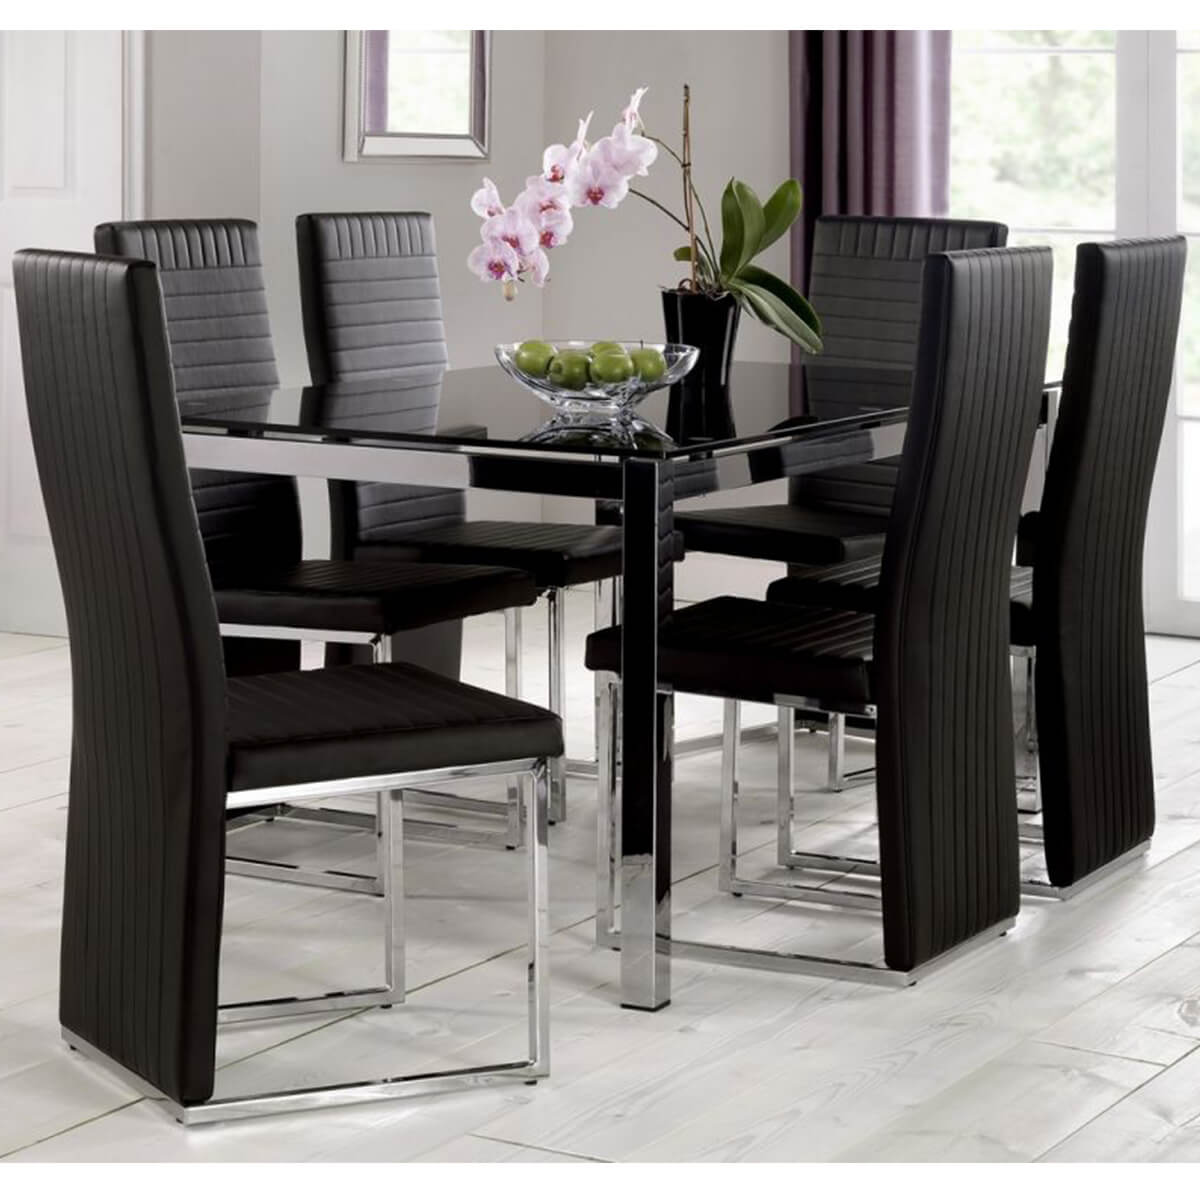 Black Dining Room Table And Chairs: Tempo Black Dining Table With Black Chairs